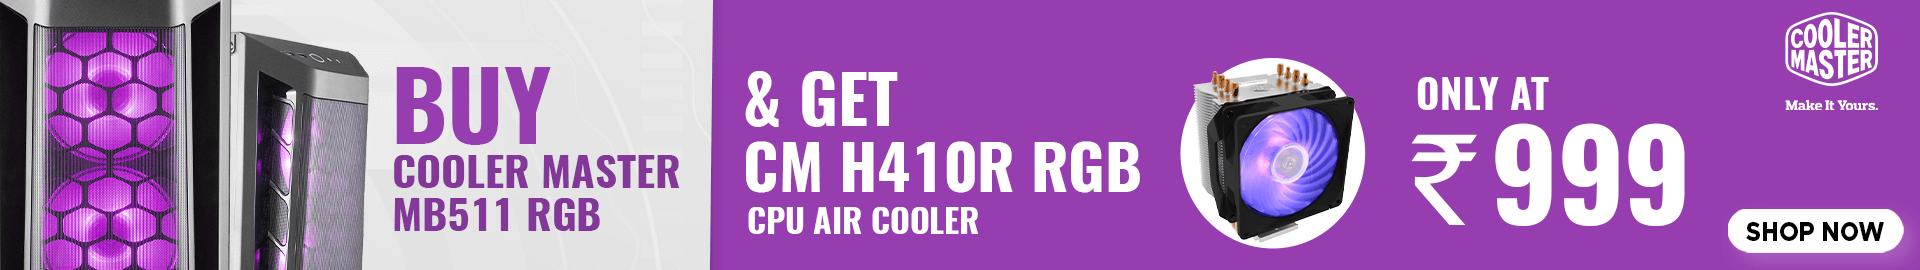 Buy Cooler Master MB511 RGB at Best Price In India